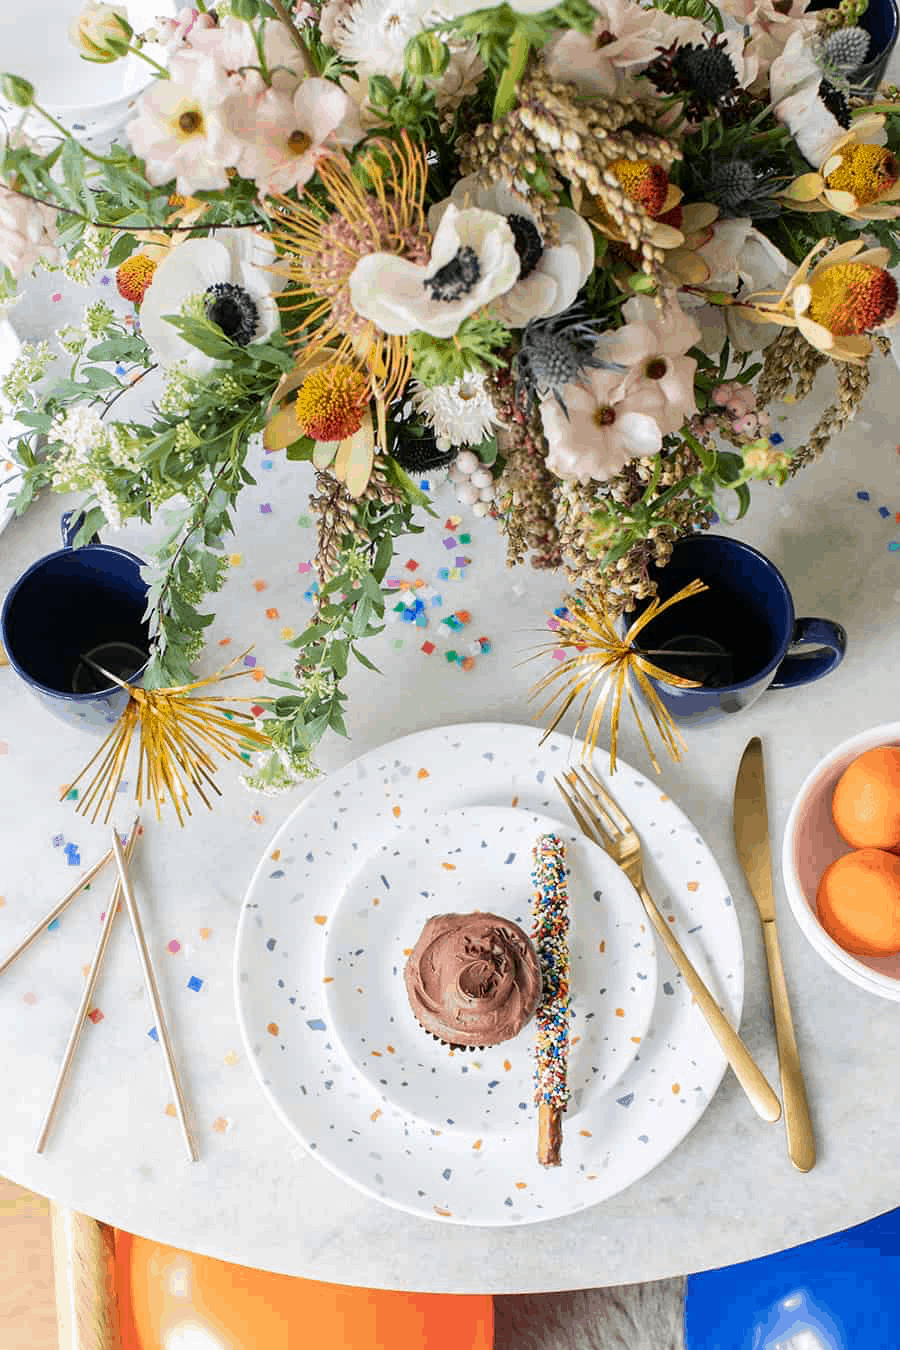 Birthday party ideas with flowers, confetti plates, cupcake and gold flatware.